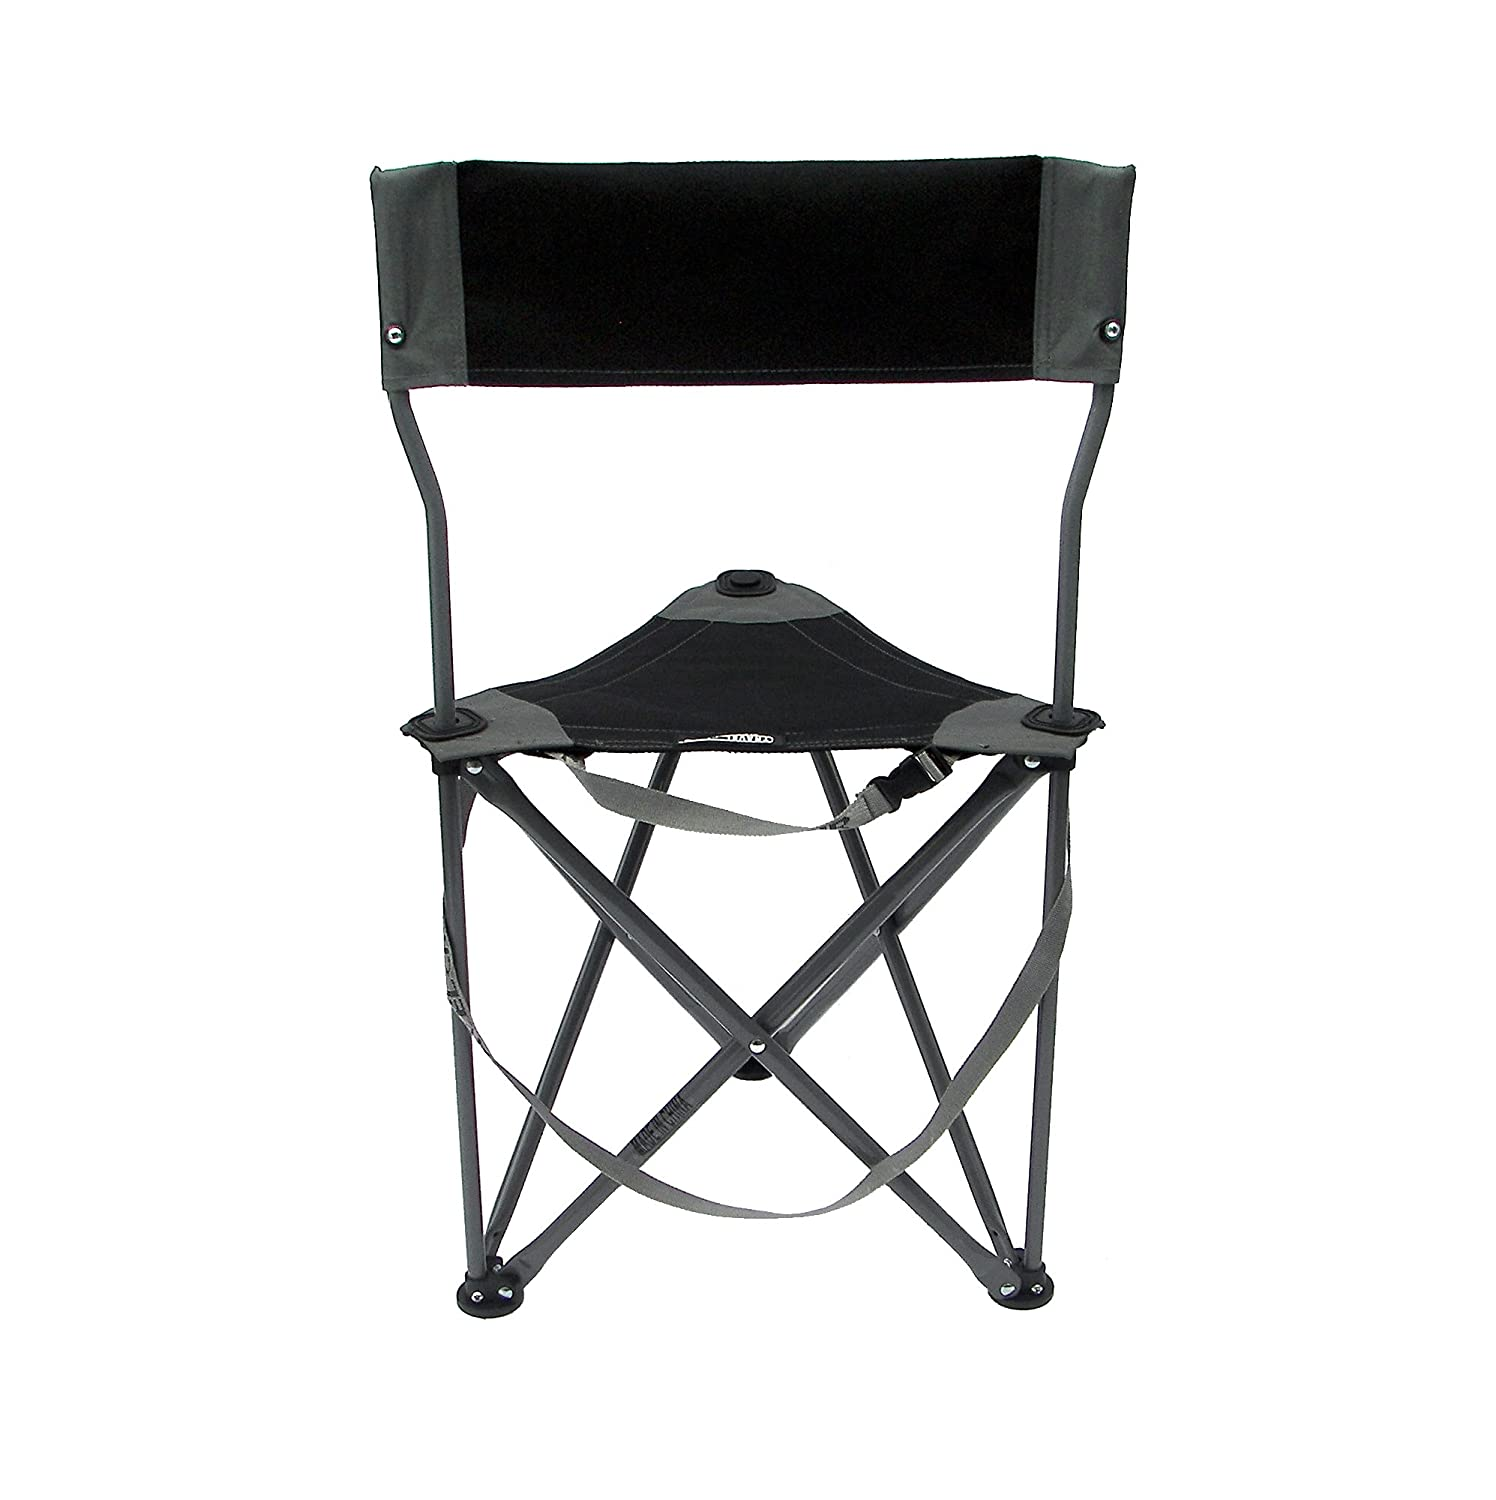 TravelChair 2 0 Ultimate Slacker Chair Folding Tripod Camp Stool